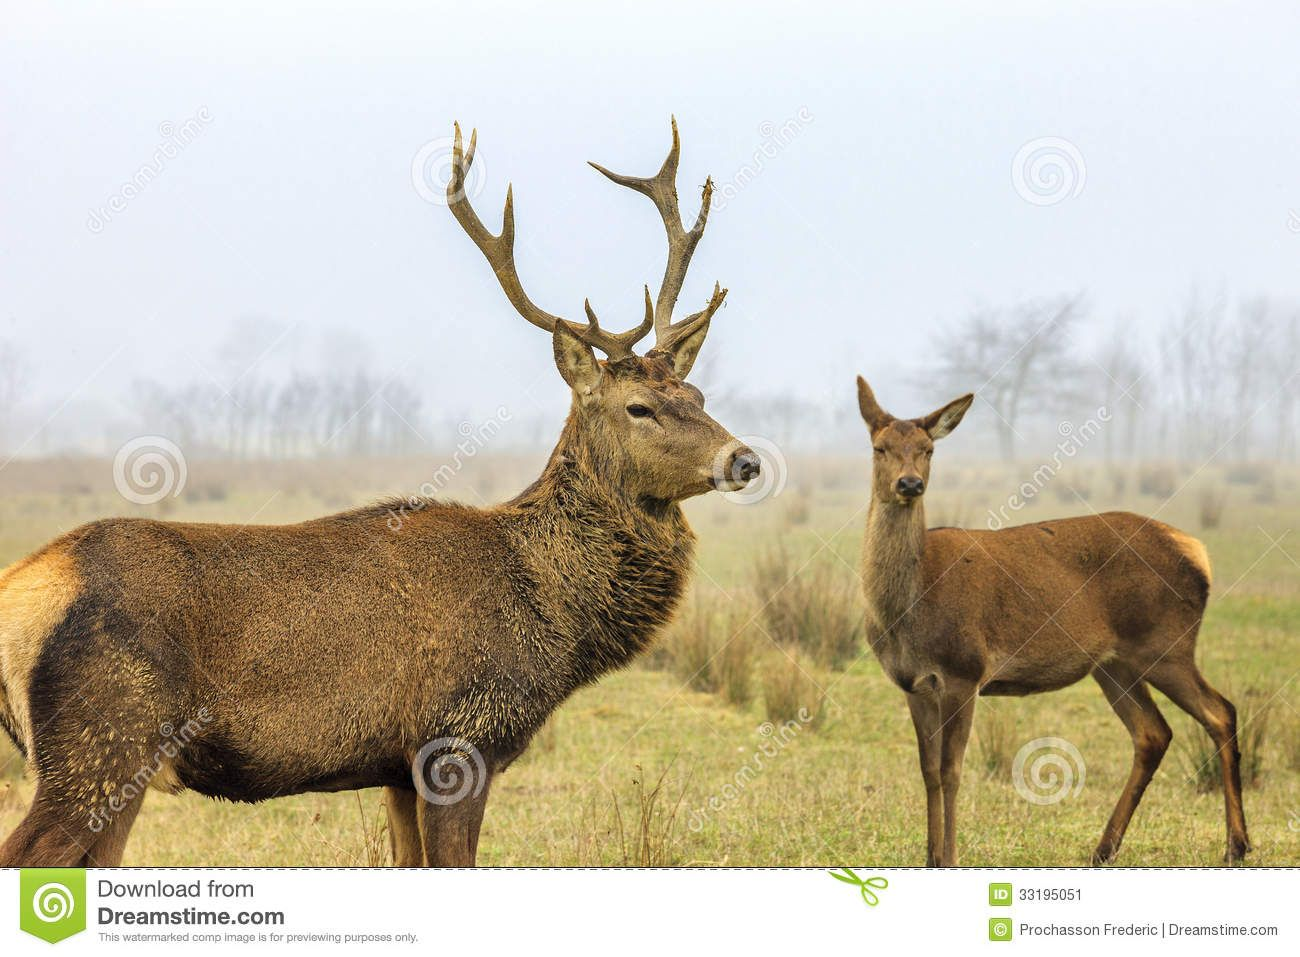 Photo About Red Deer Stag And Doe In Forest Landscape Of Foggy Misty 33195051